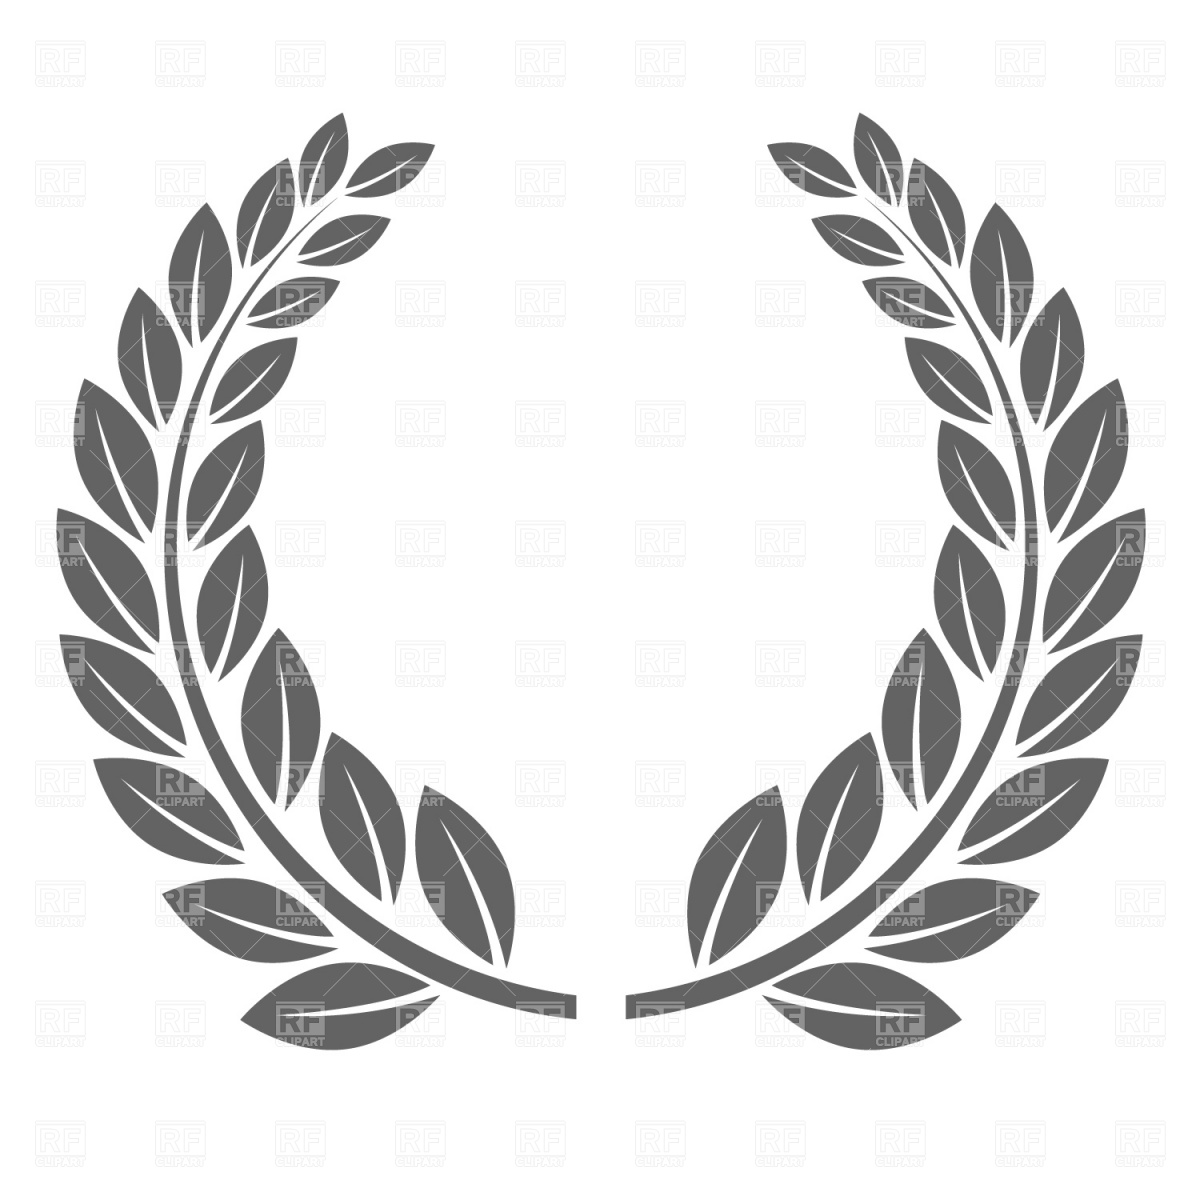 Laurel clipart black and white picture royalty free Free Laurel Wreath Cliparts, Download Free Clip Art, Free Clip Art ... picture royalty free